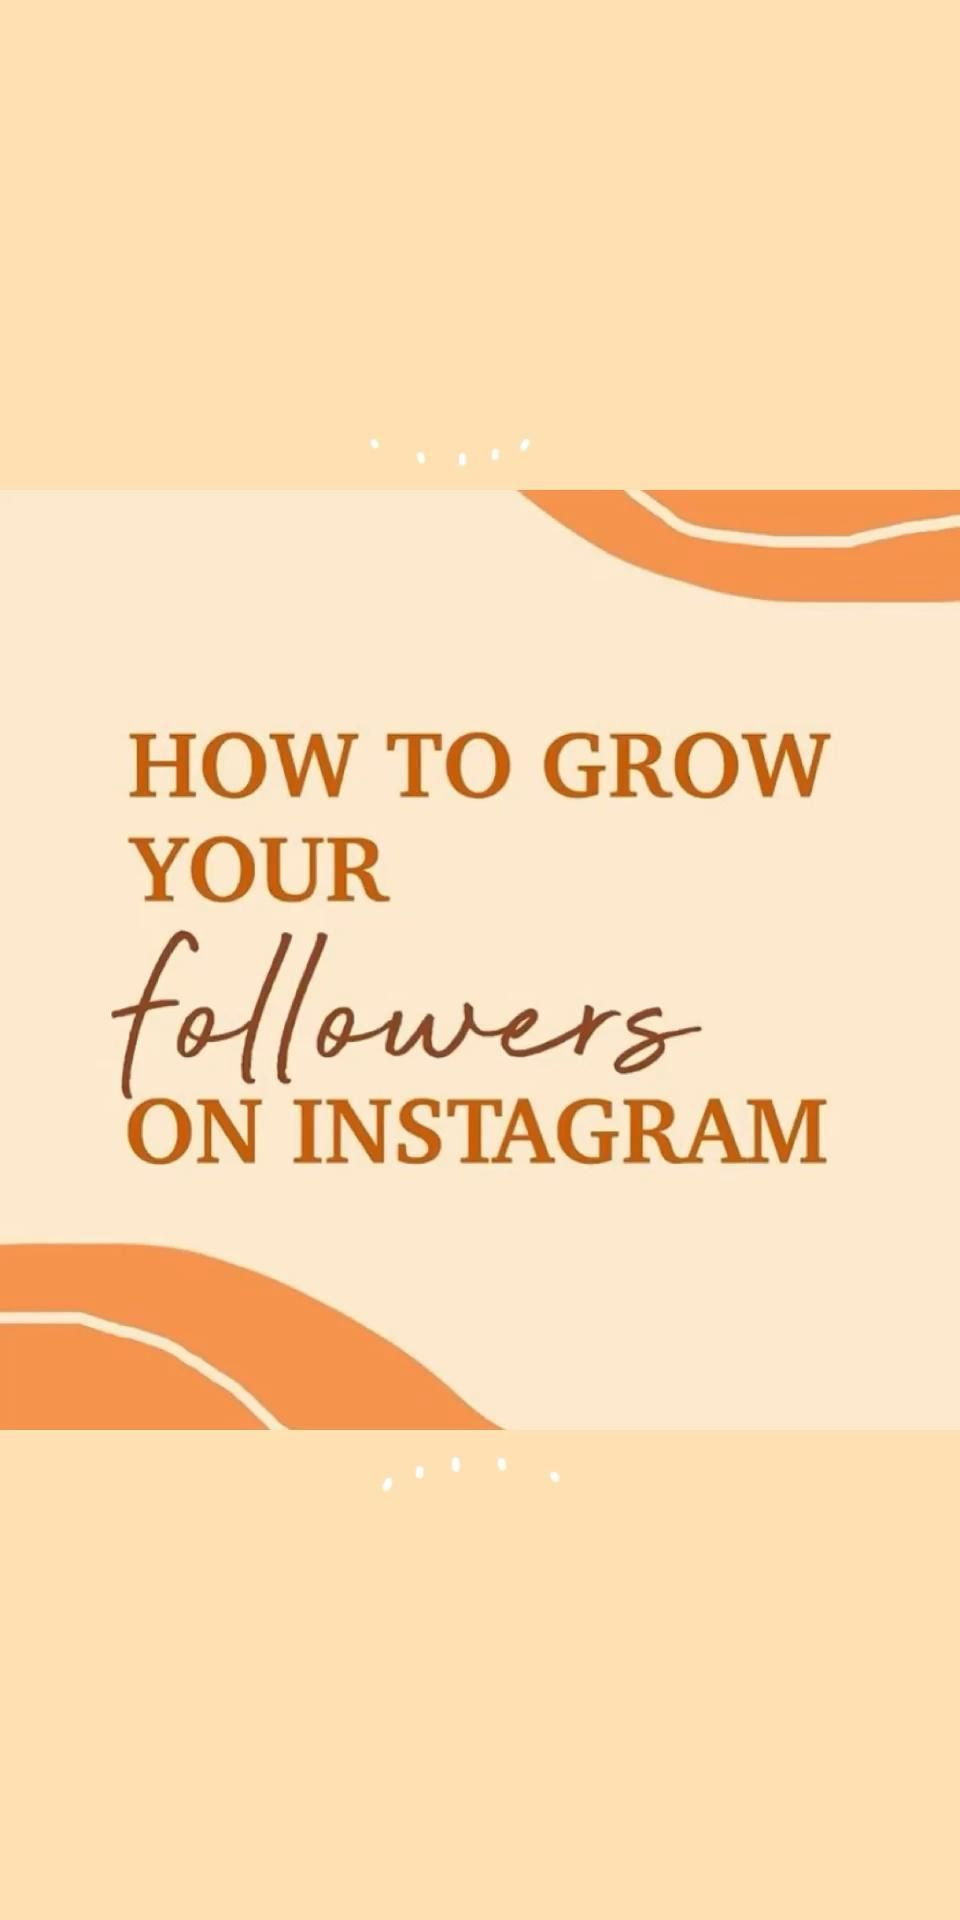 Pin On Instagram For Small Business